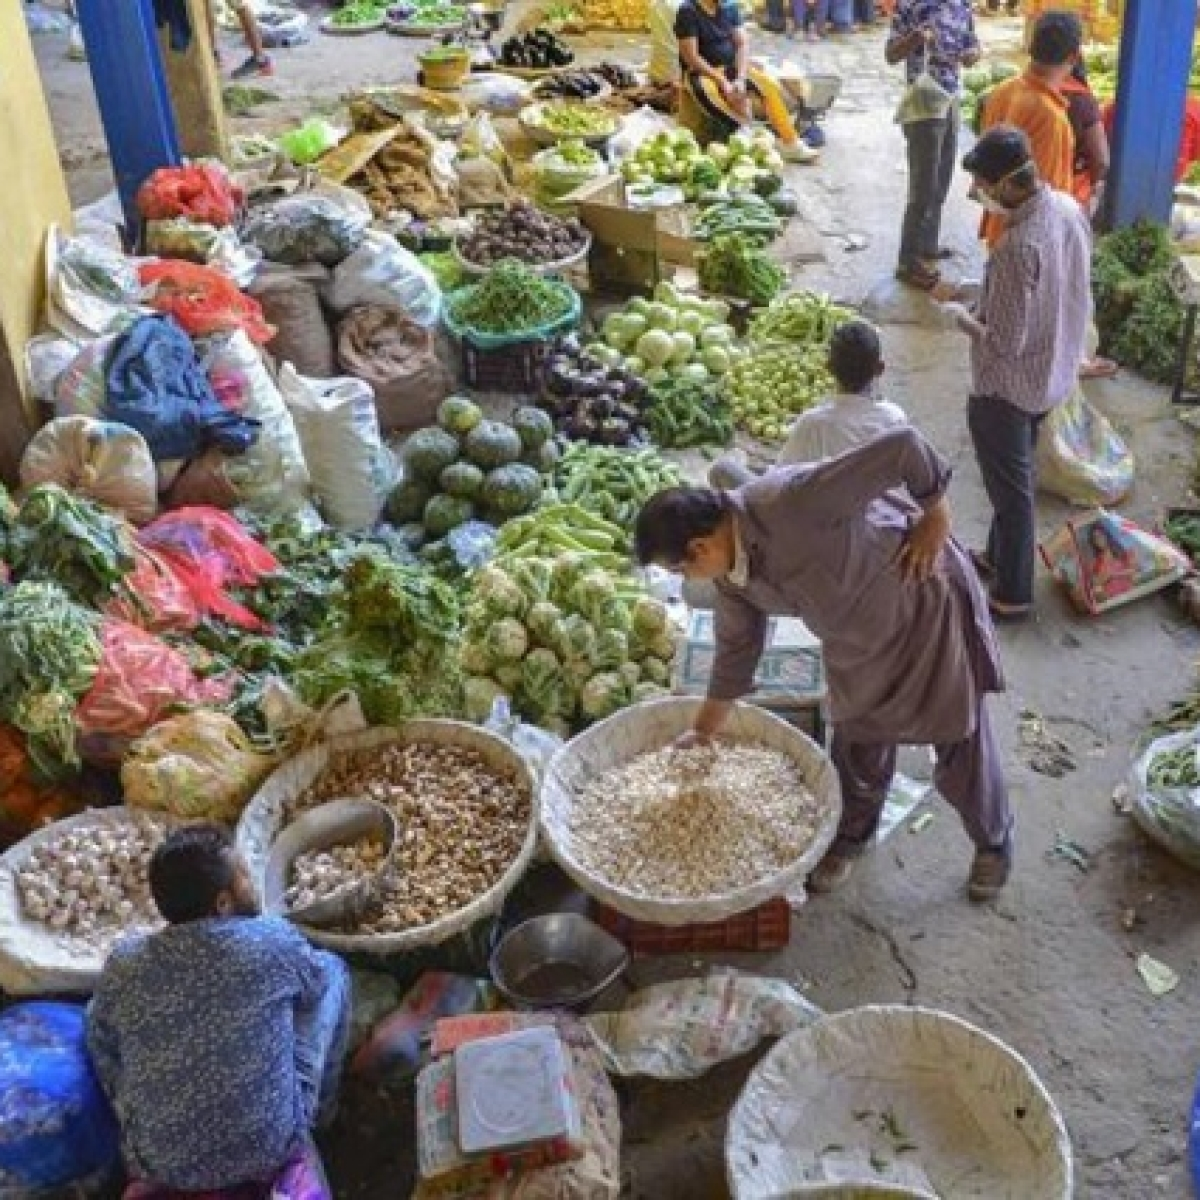 WPI inflation rises to 2.03% in January from 1.22% in December; close to February 2020 level